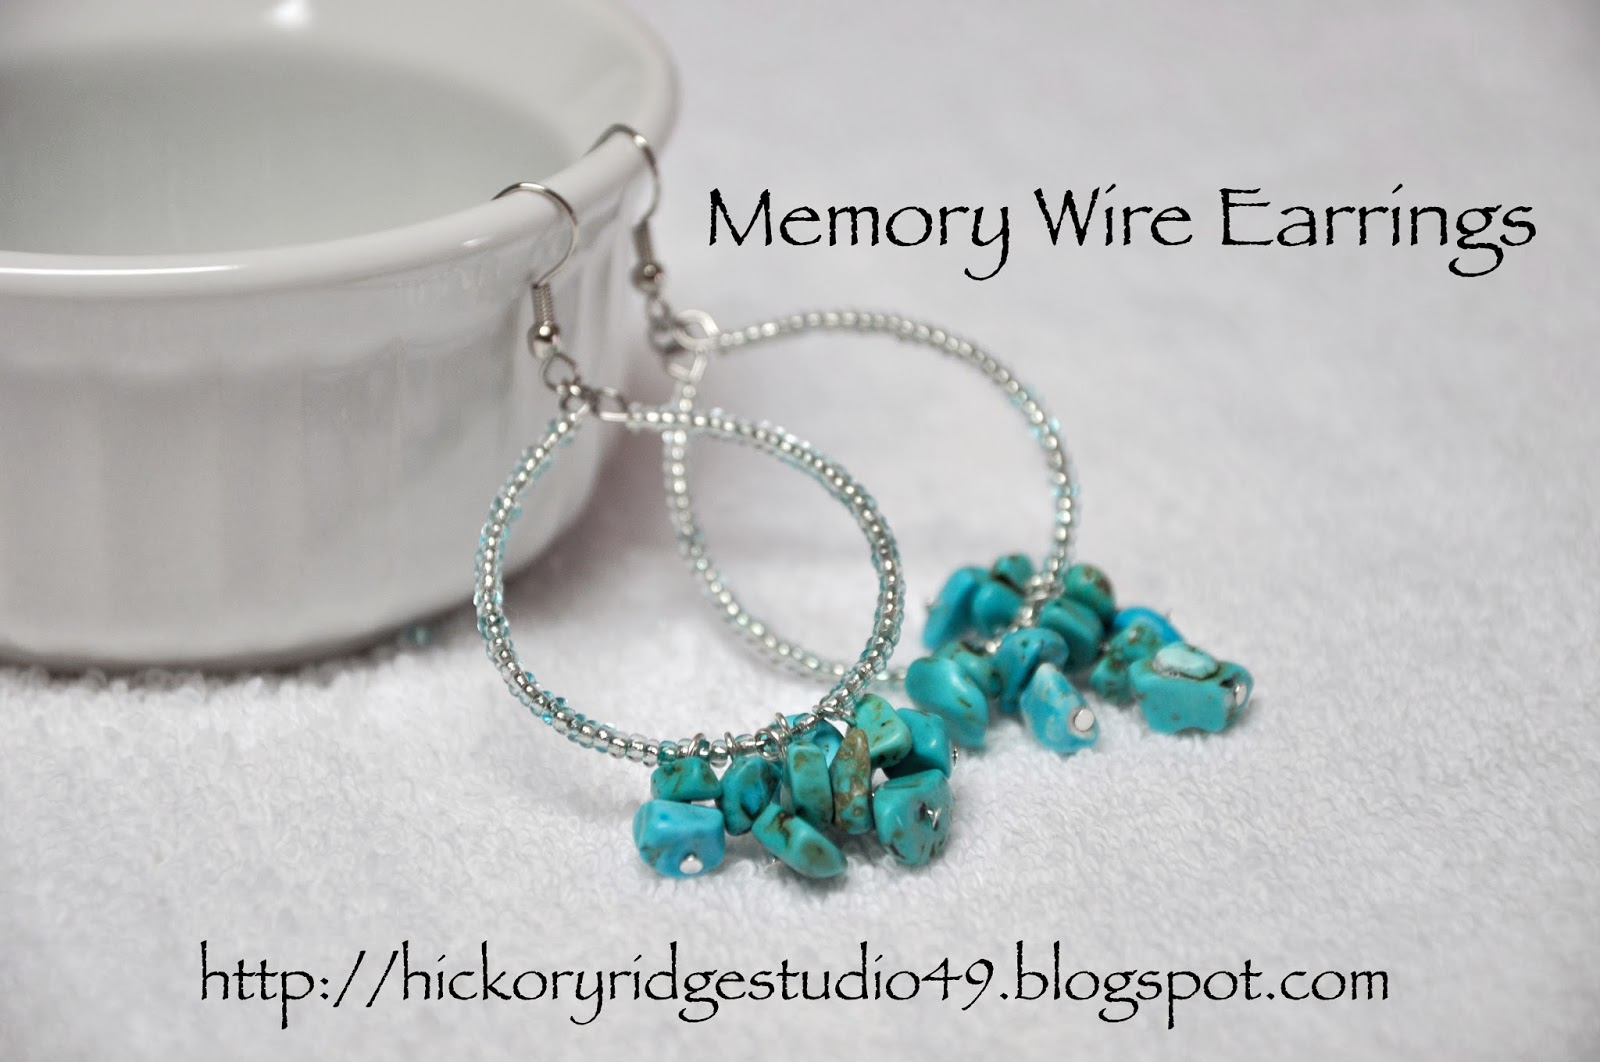 Making Jewelry With Memory Wire Earrings Center Cross Necklace Sterling Silver Wrapped God39s Eye Make It Monday Rh Hickoryridgestudio49 Blogspot Com 16 Gauge